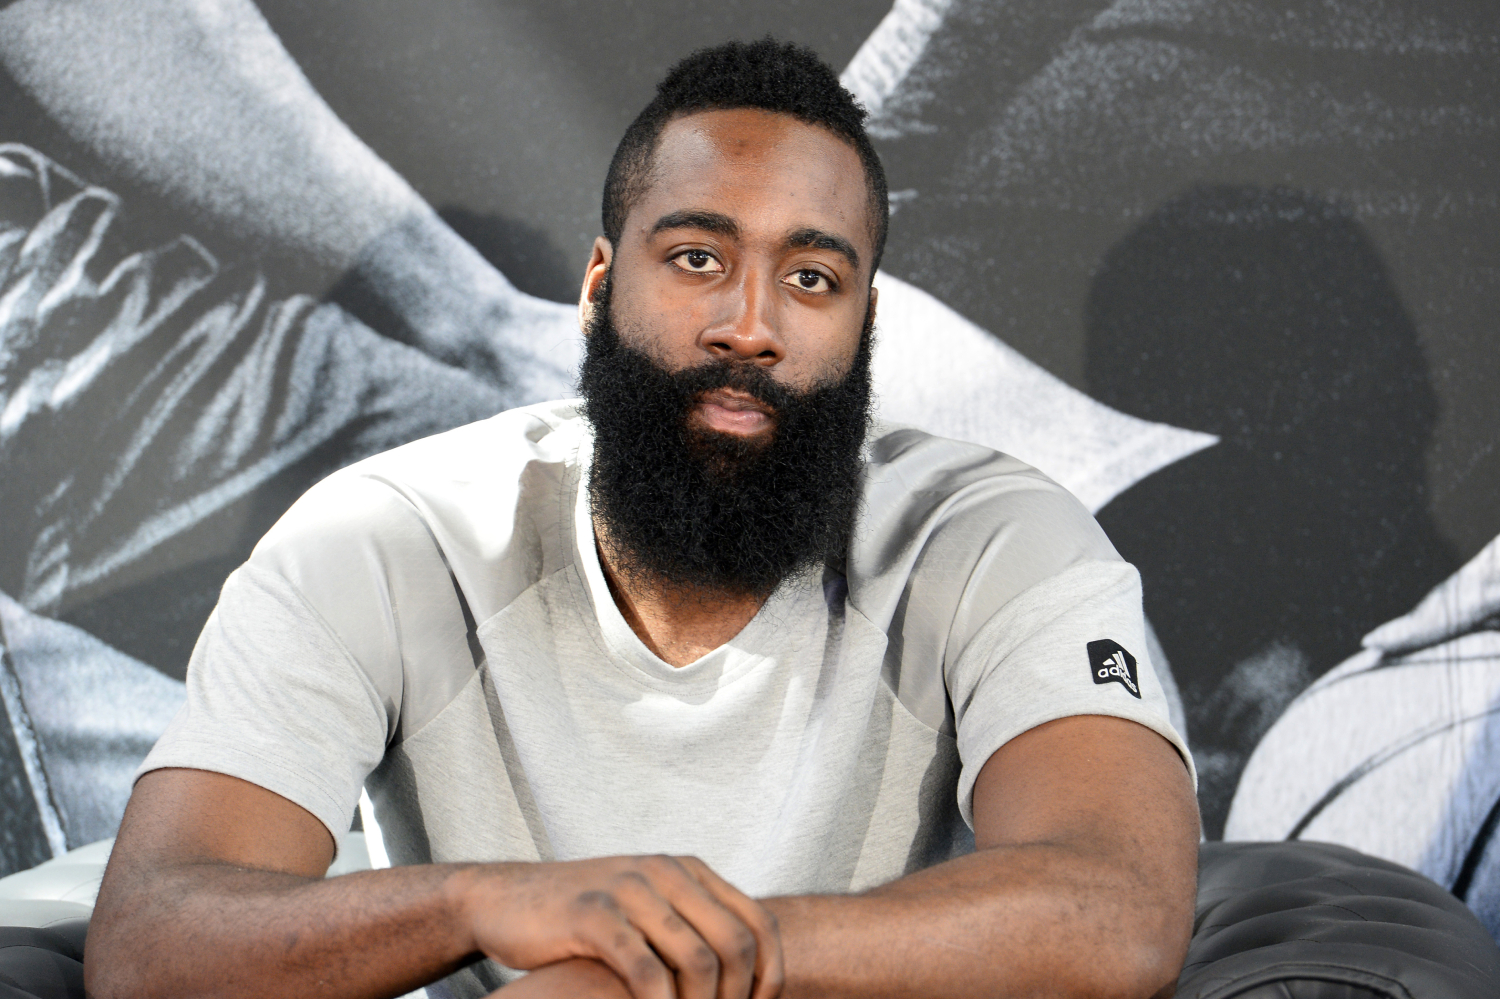 James Harden Would Be Wise To Follow the Harsh Advice of a Beloved NBA Hall of Famer